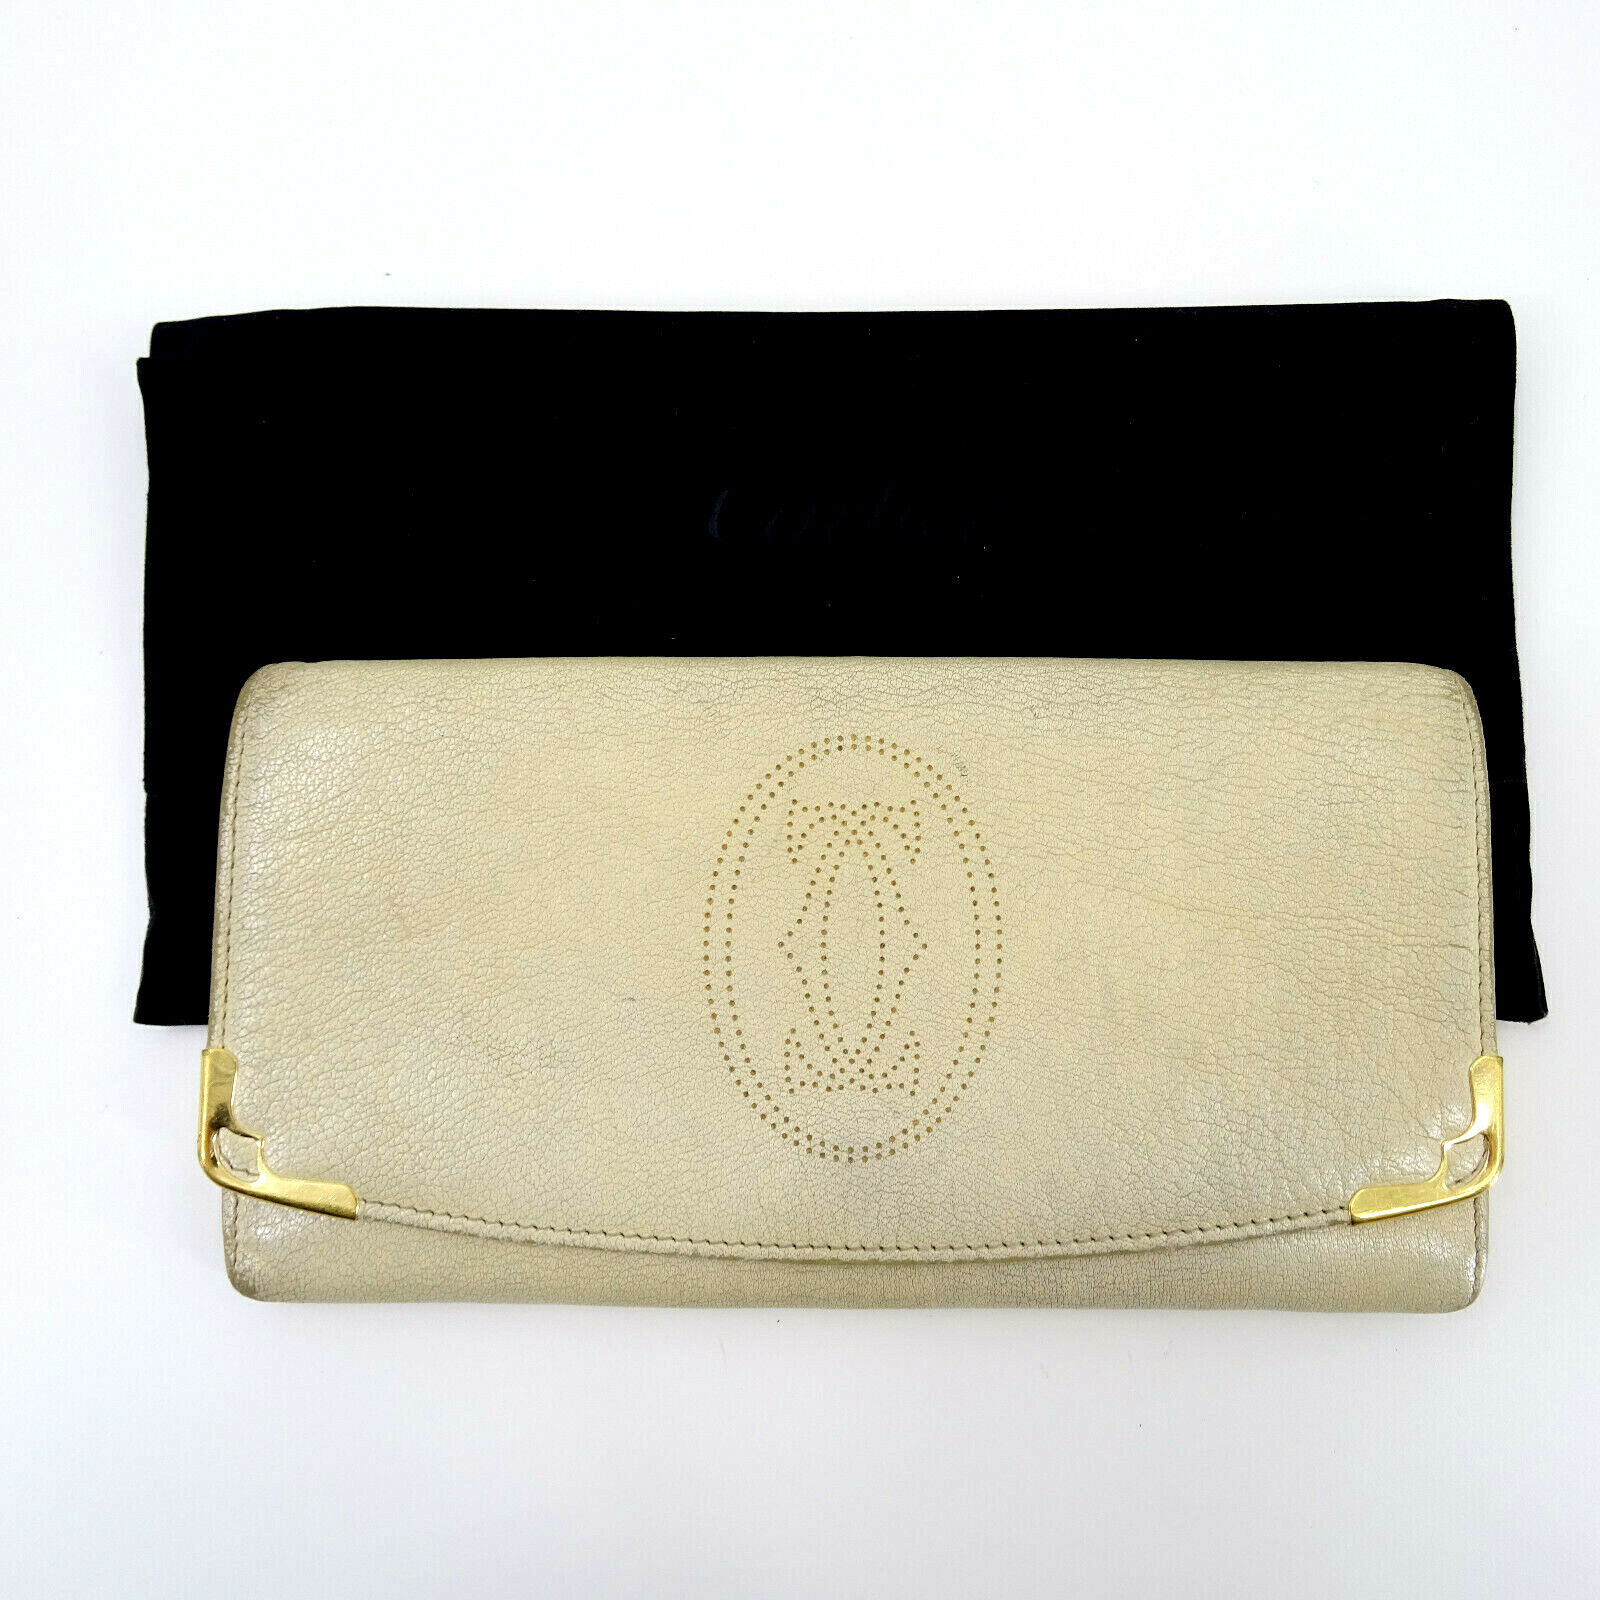 Cartier Vintage Leather Purse Wallet Cardholder in White/Cream/Ivory + Dustbag